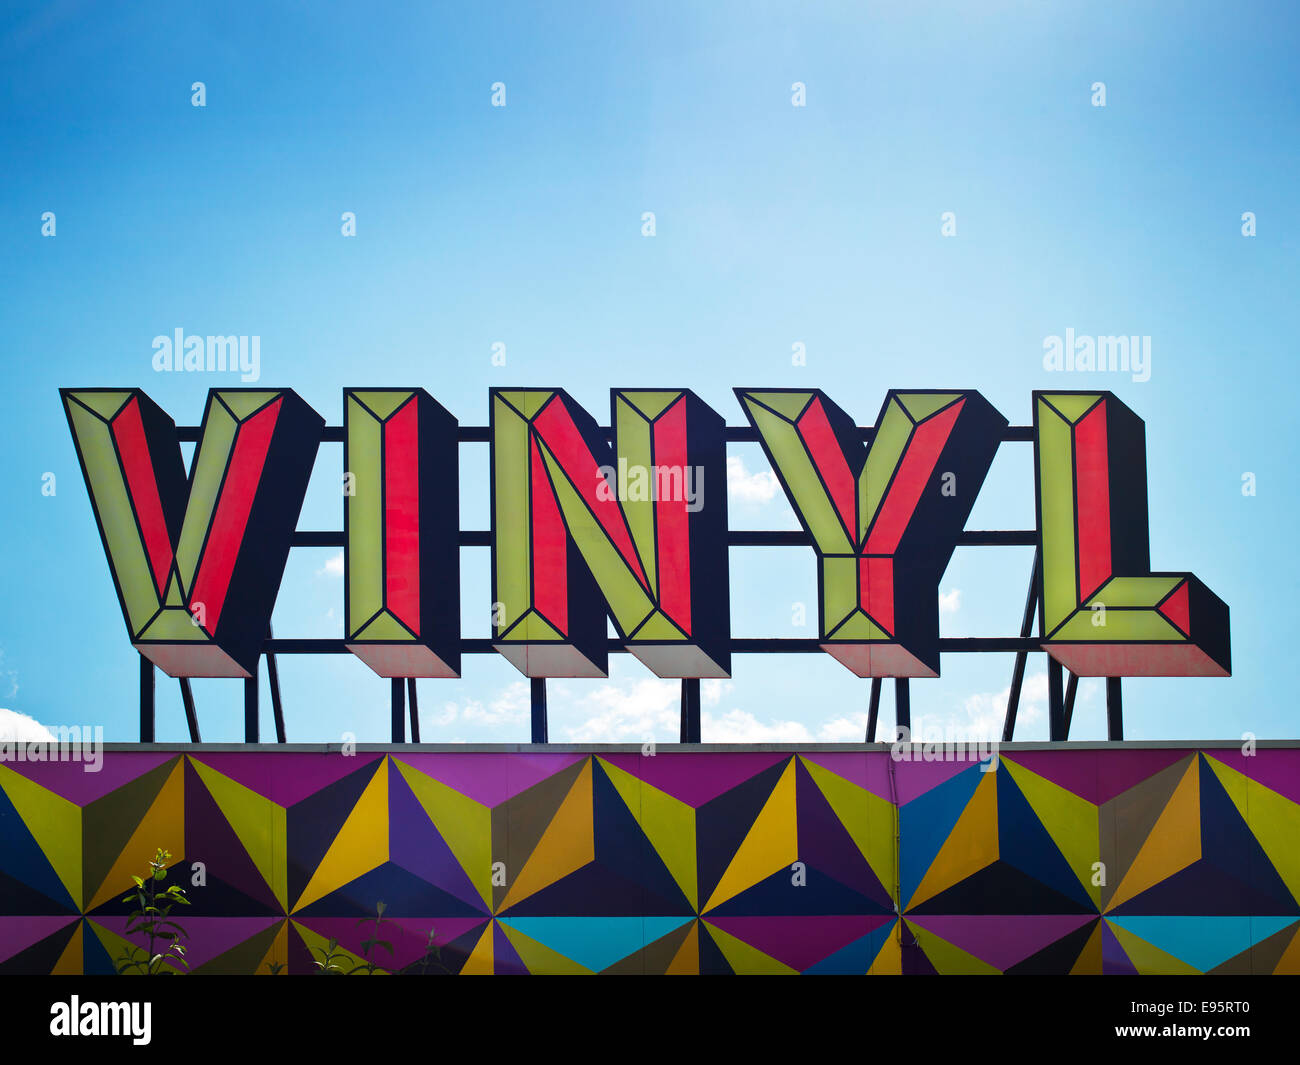 roof top sign depicting vinyl word / slogan with bright colours against blue sky above derelict club - Stock Image